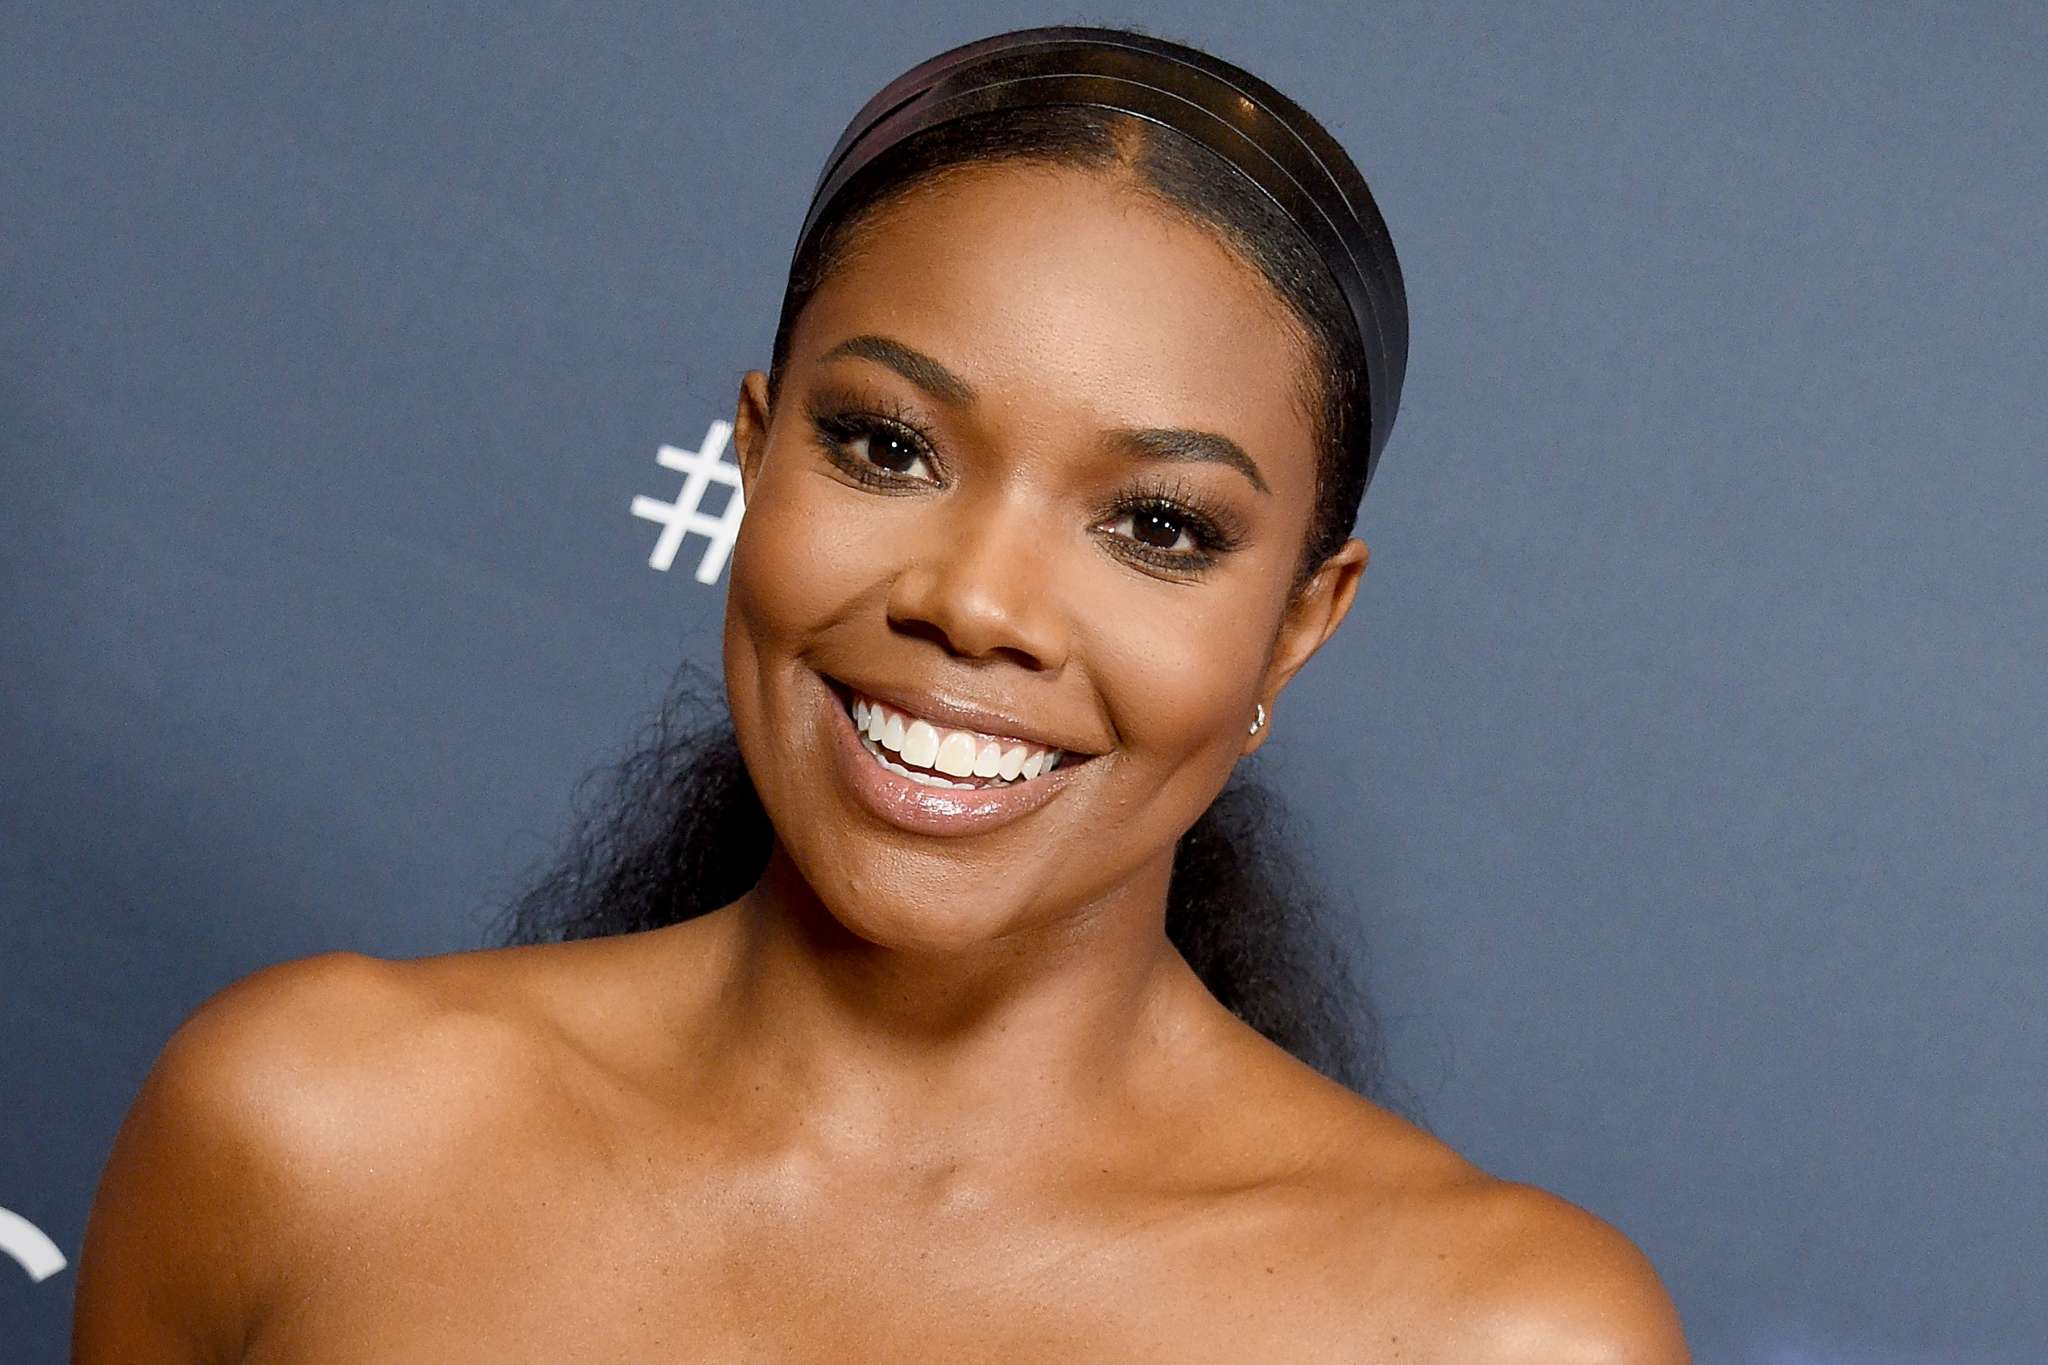 gabrielle-union-praises-a-blossoming-author-check-her-out-here